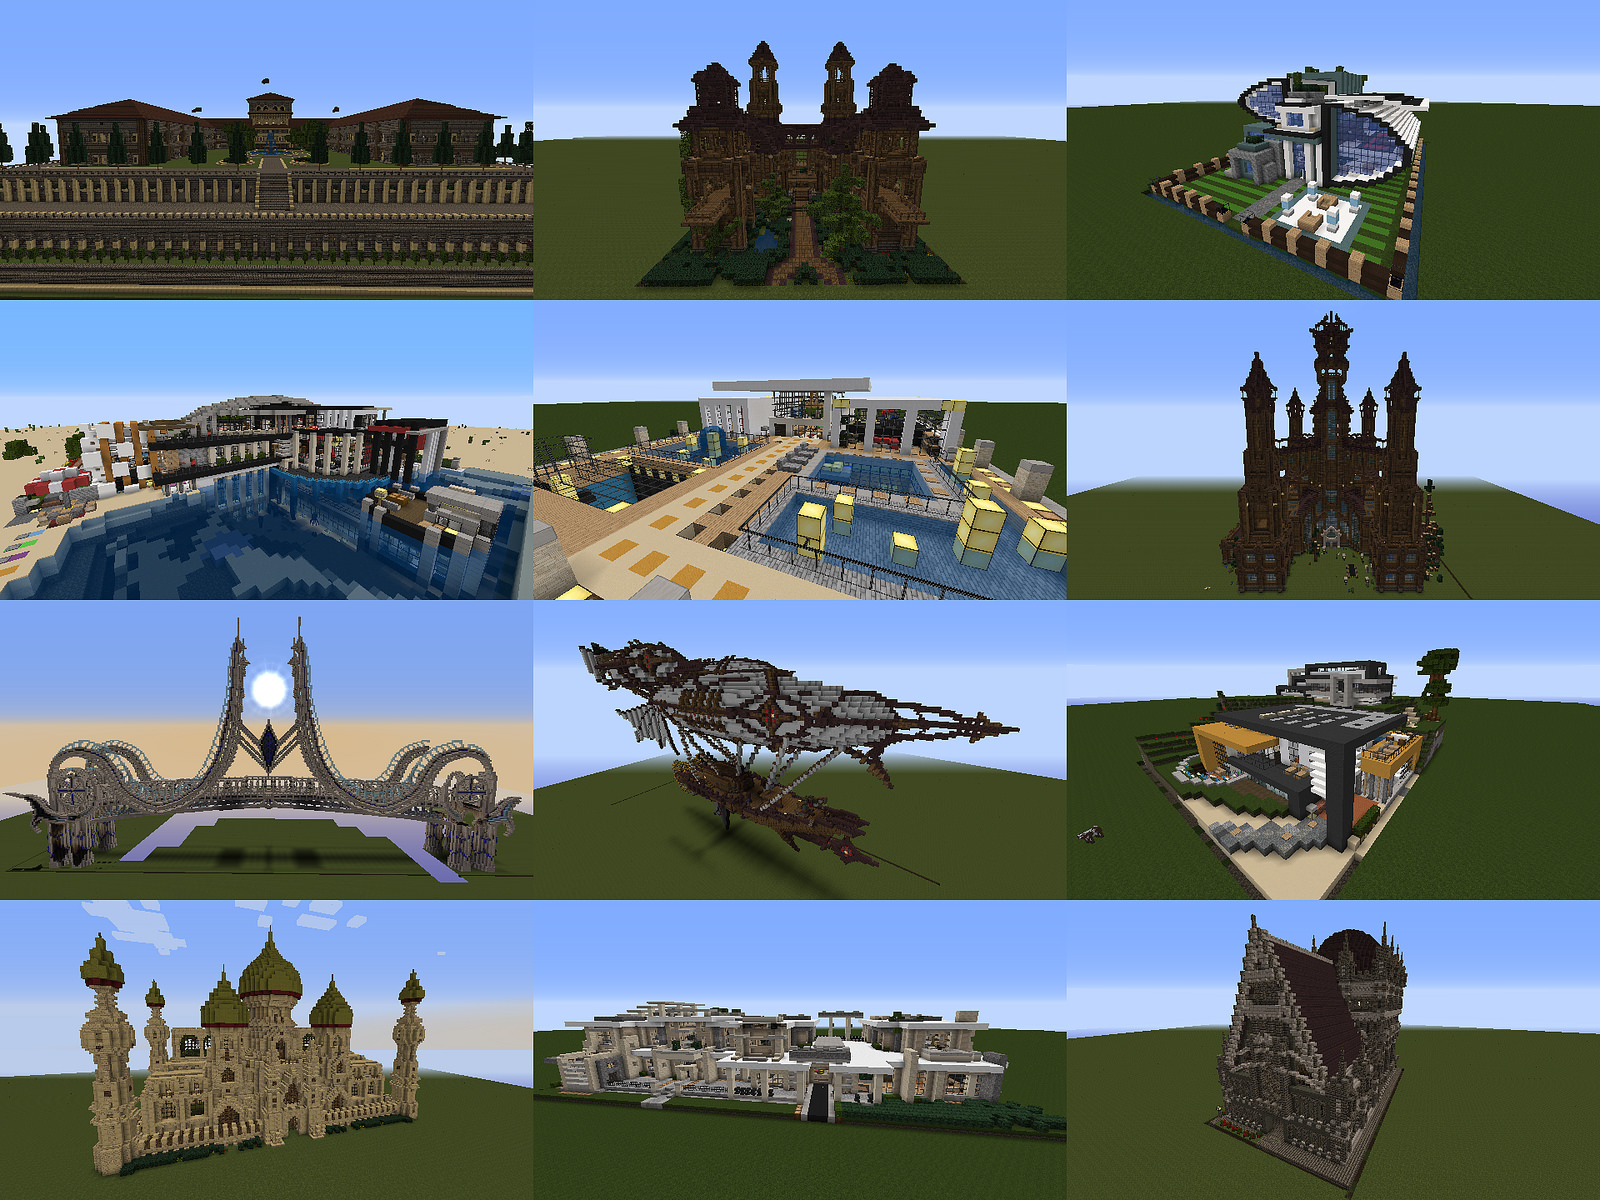 1481382082_267_instant-structures-mod-by-maggicraft-1-111-10-21-7-10 Instant Structures Mod by MaggiCraft 1.11/1.10.2/1.7.10